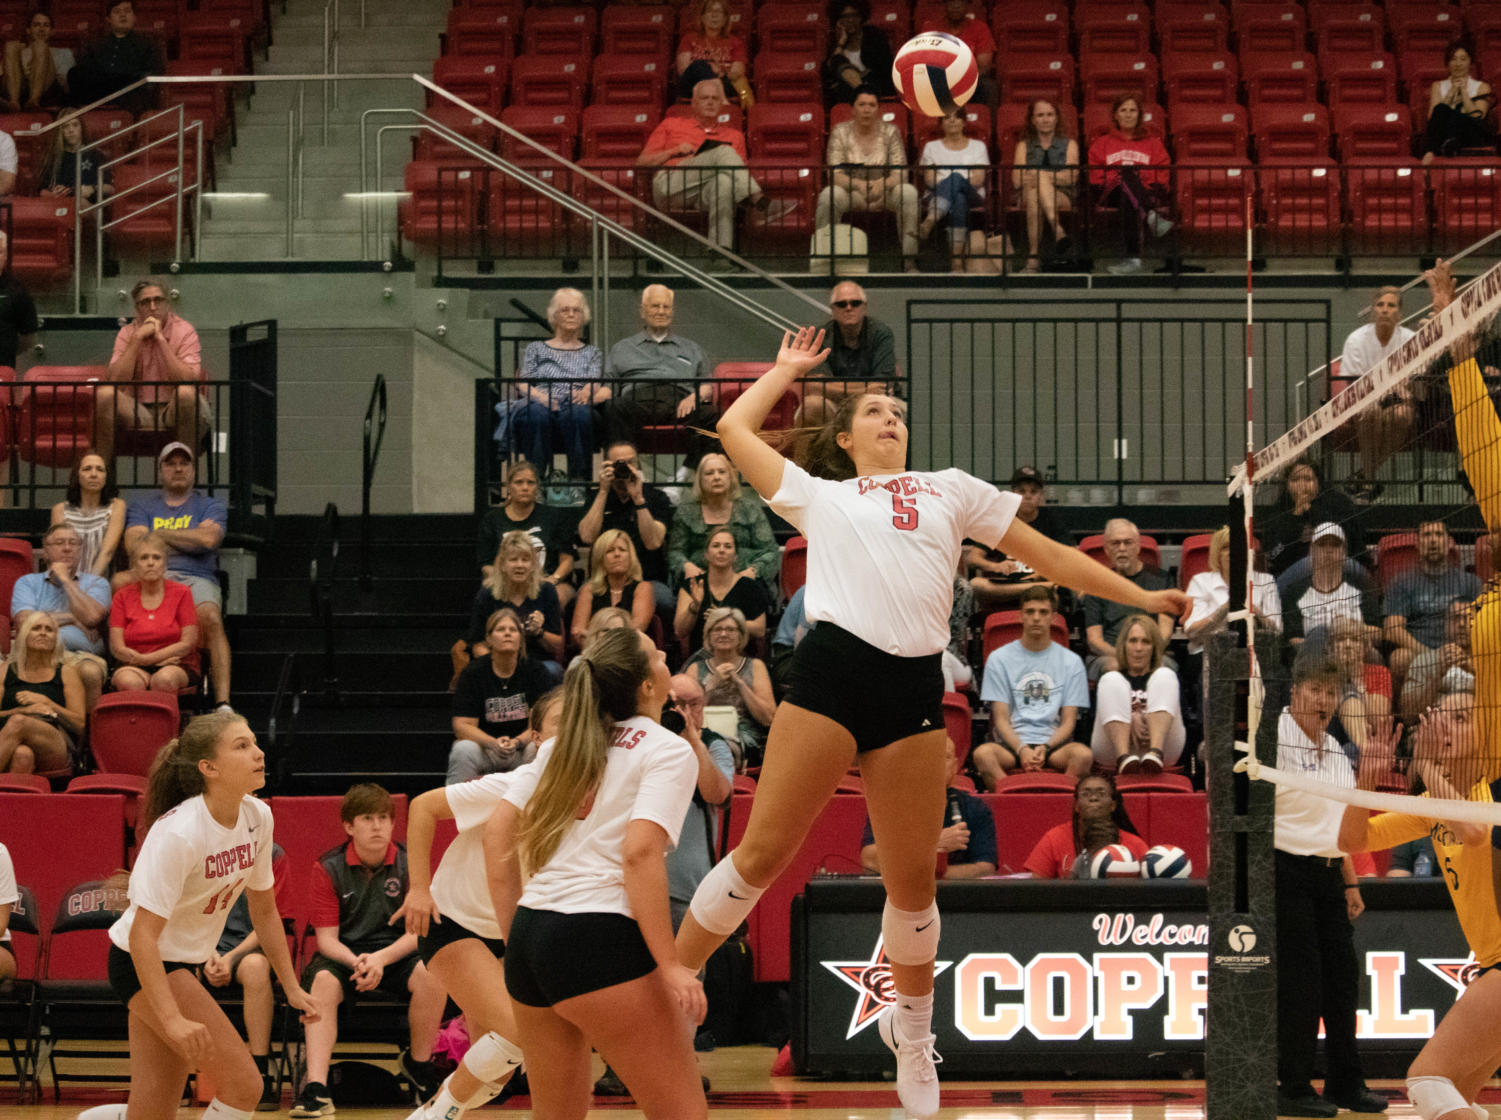 Coppell junior middle blocker Madison Gilliland goes for a spike during Tuesday's volleyball match against McKinney at the CHS Arena. After three close sets, the Cowgirls defeated the Lionettes, 3-0.